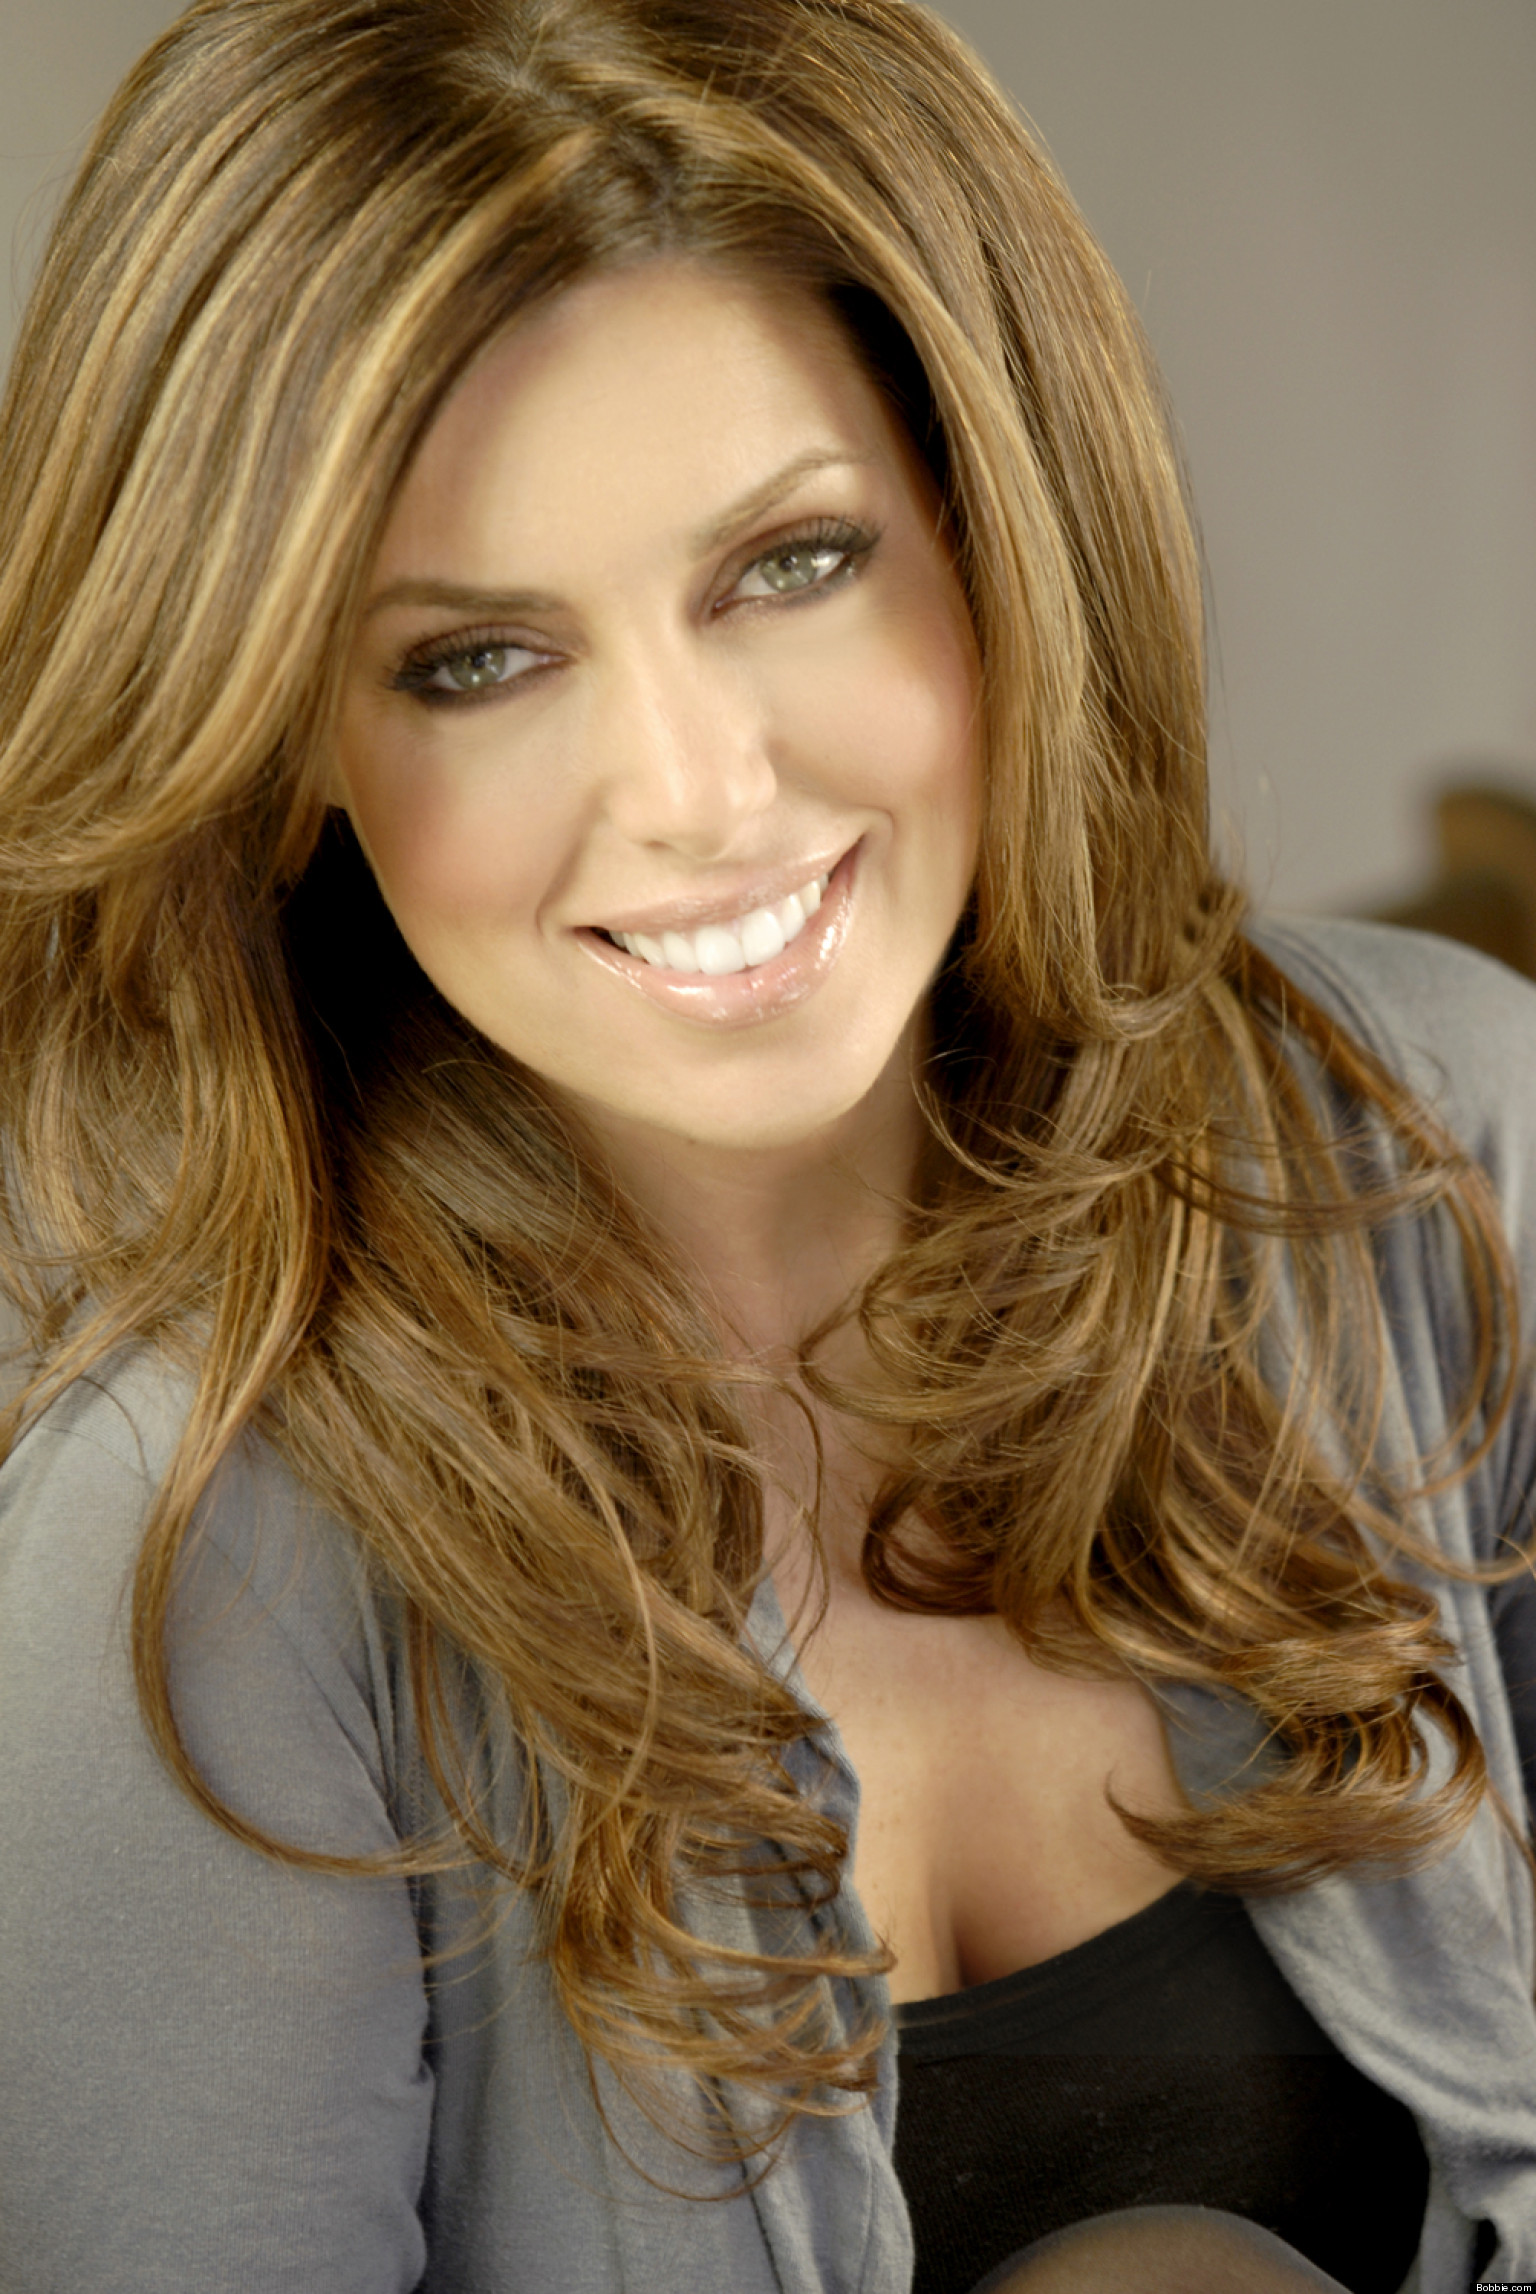 Ask Style And Beauty Expert Bobbie Thomas A Question! : HuffPost